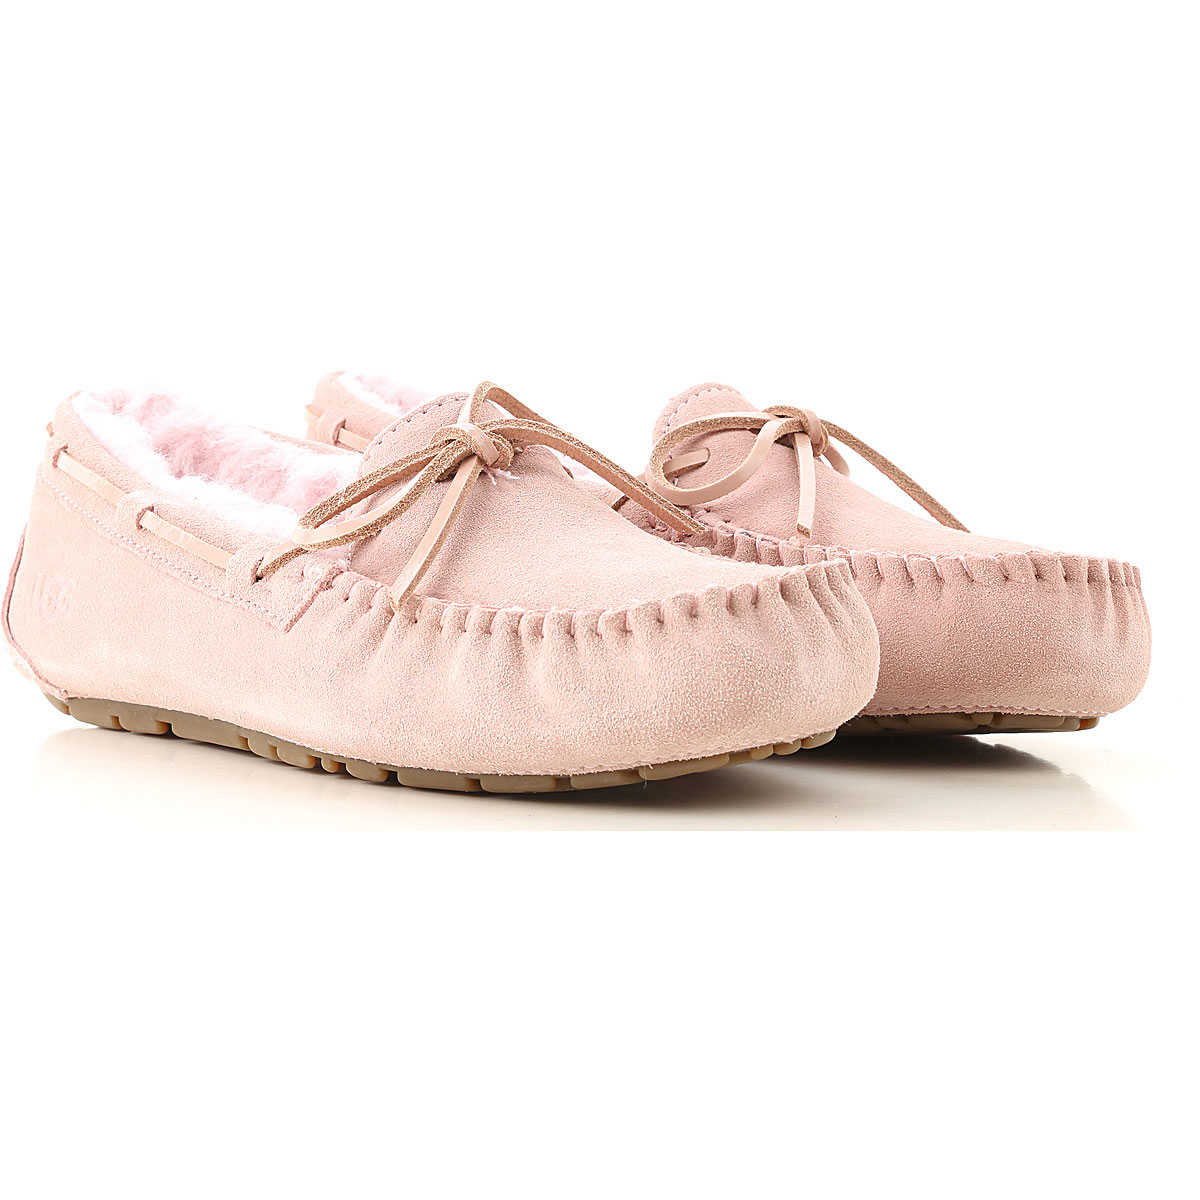 UGG Loafers for Women Rose USA - GOOFASH